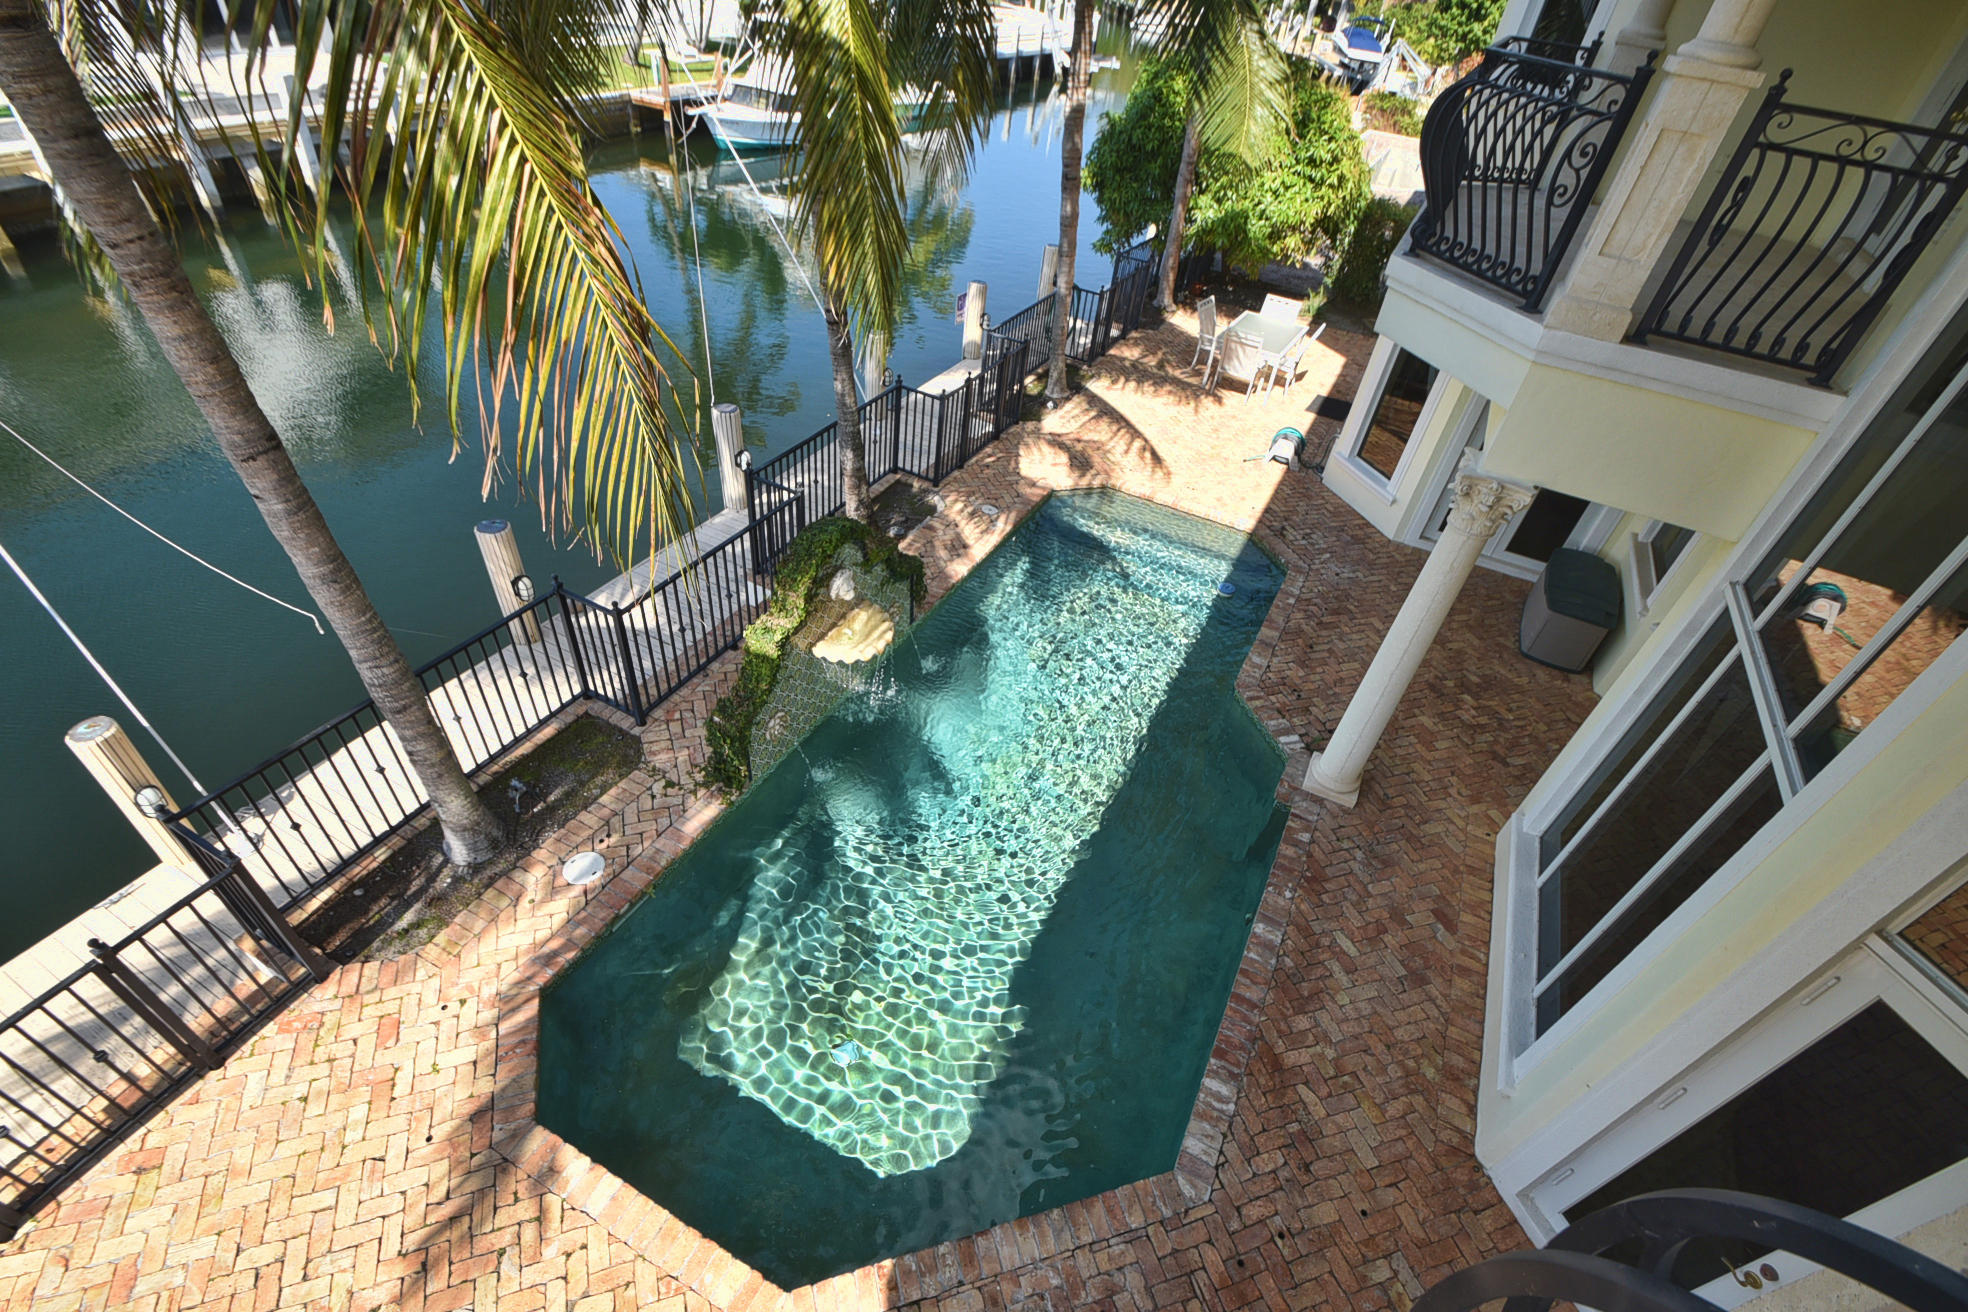 621 Golden Harbour Drive, Boca Raton, 33432, MLS # RX-10310042 | One  Sotheby's International Realty